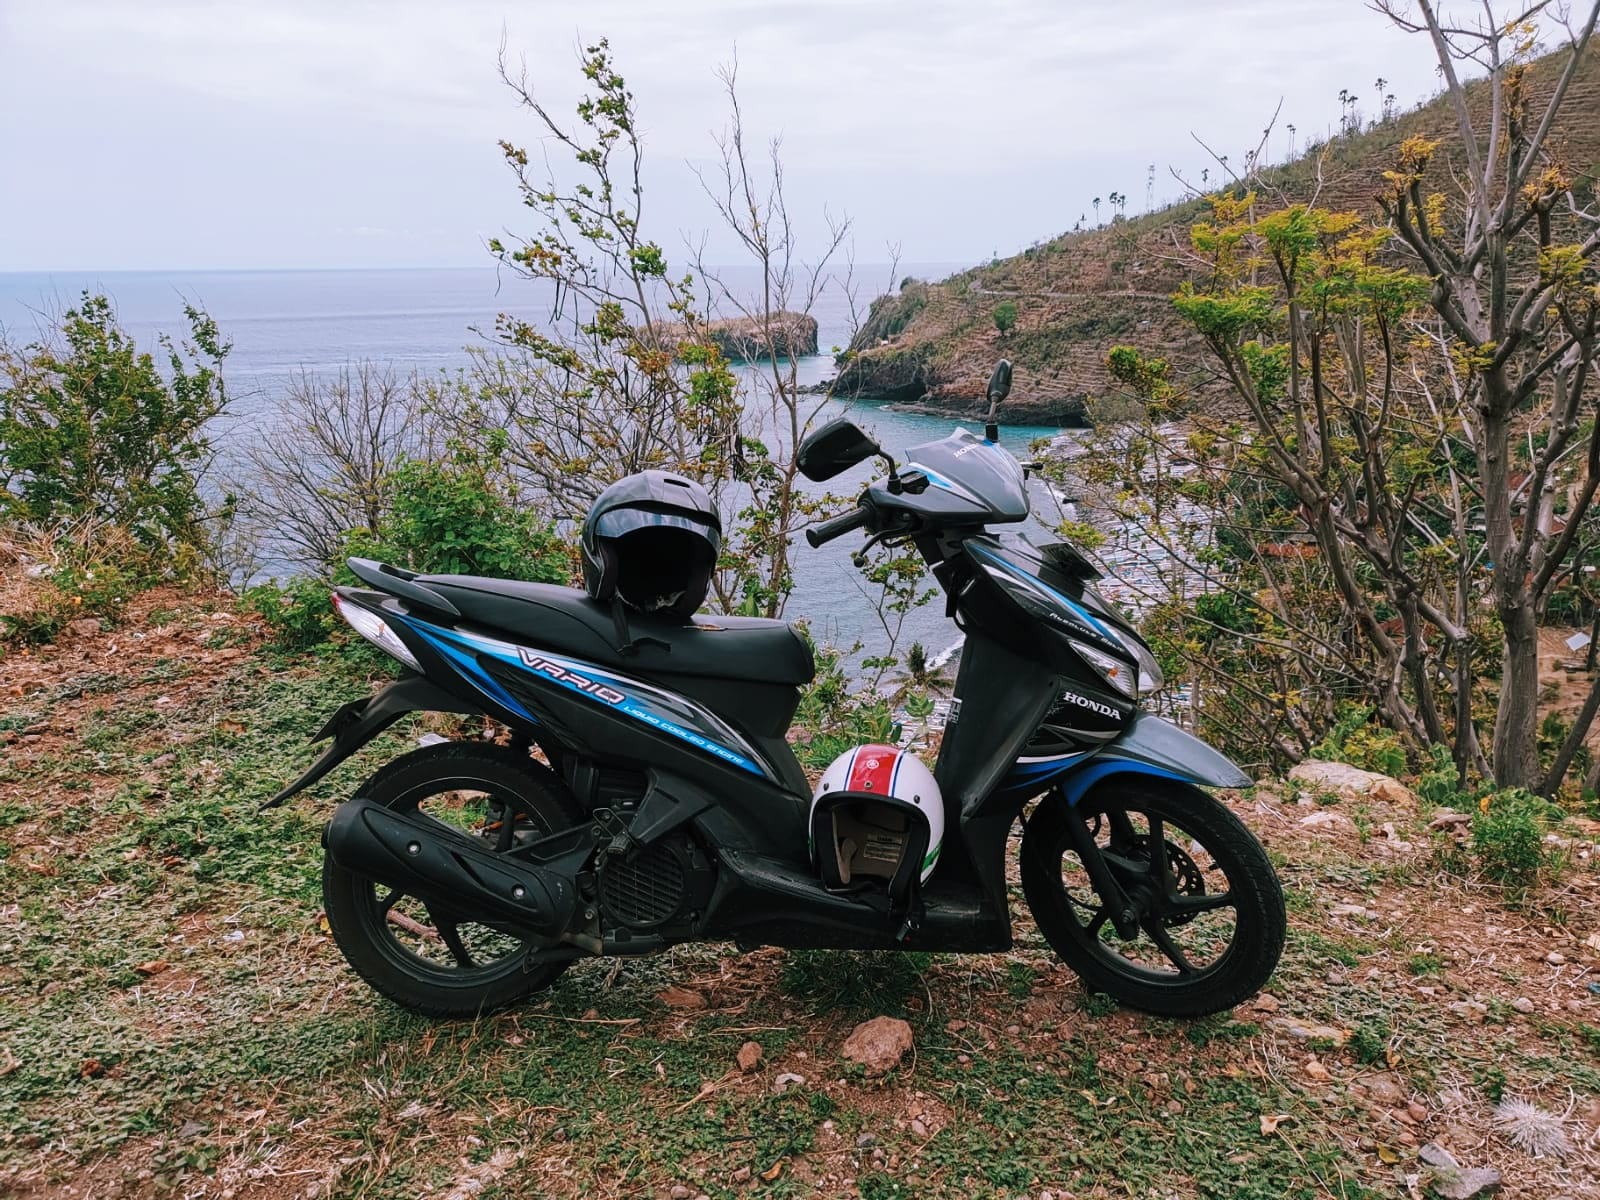 Pura gili selang pointview in Amed Bali, with our motorbike. 12 things to do in Amed Bali